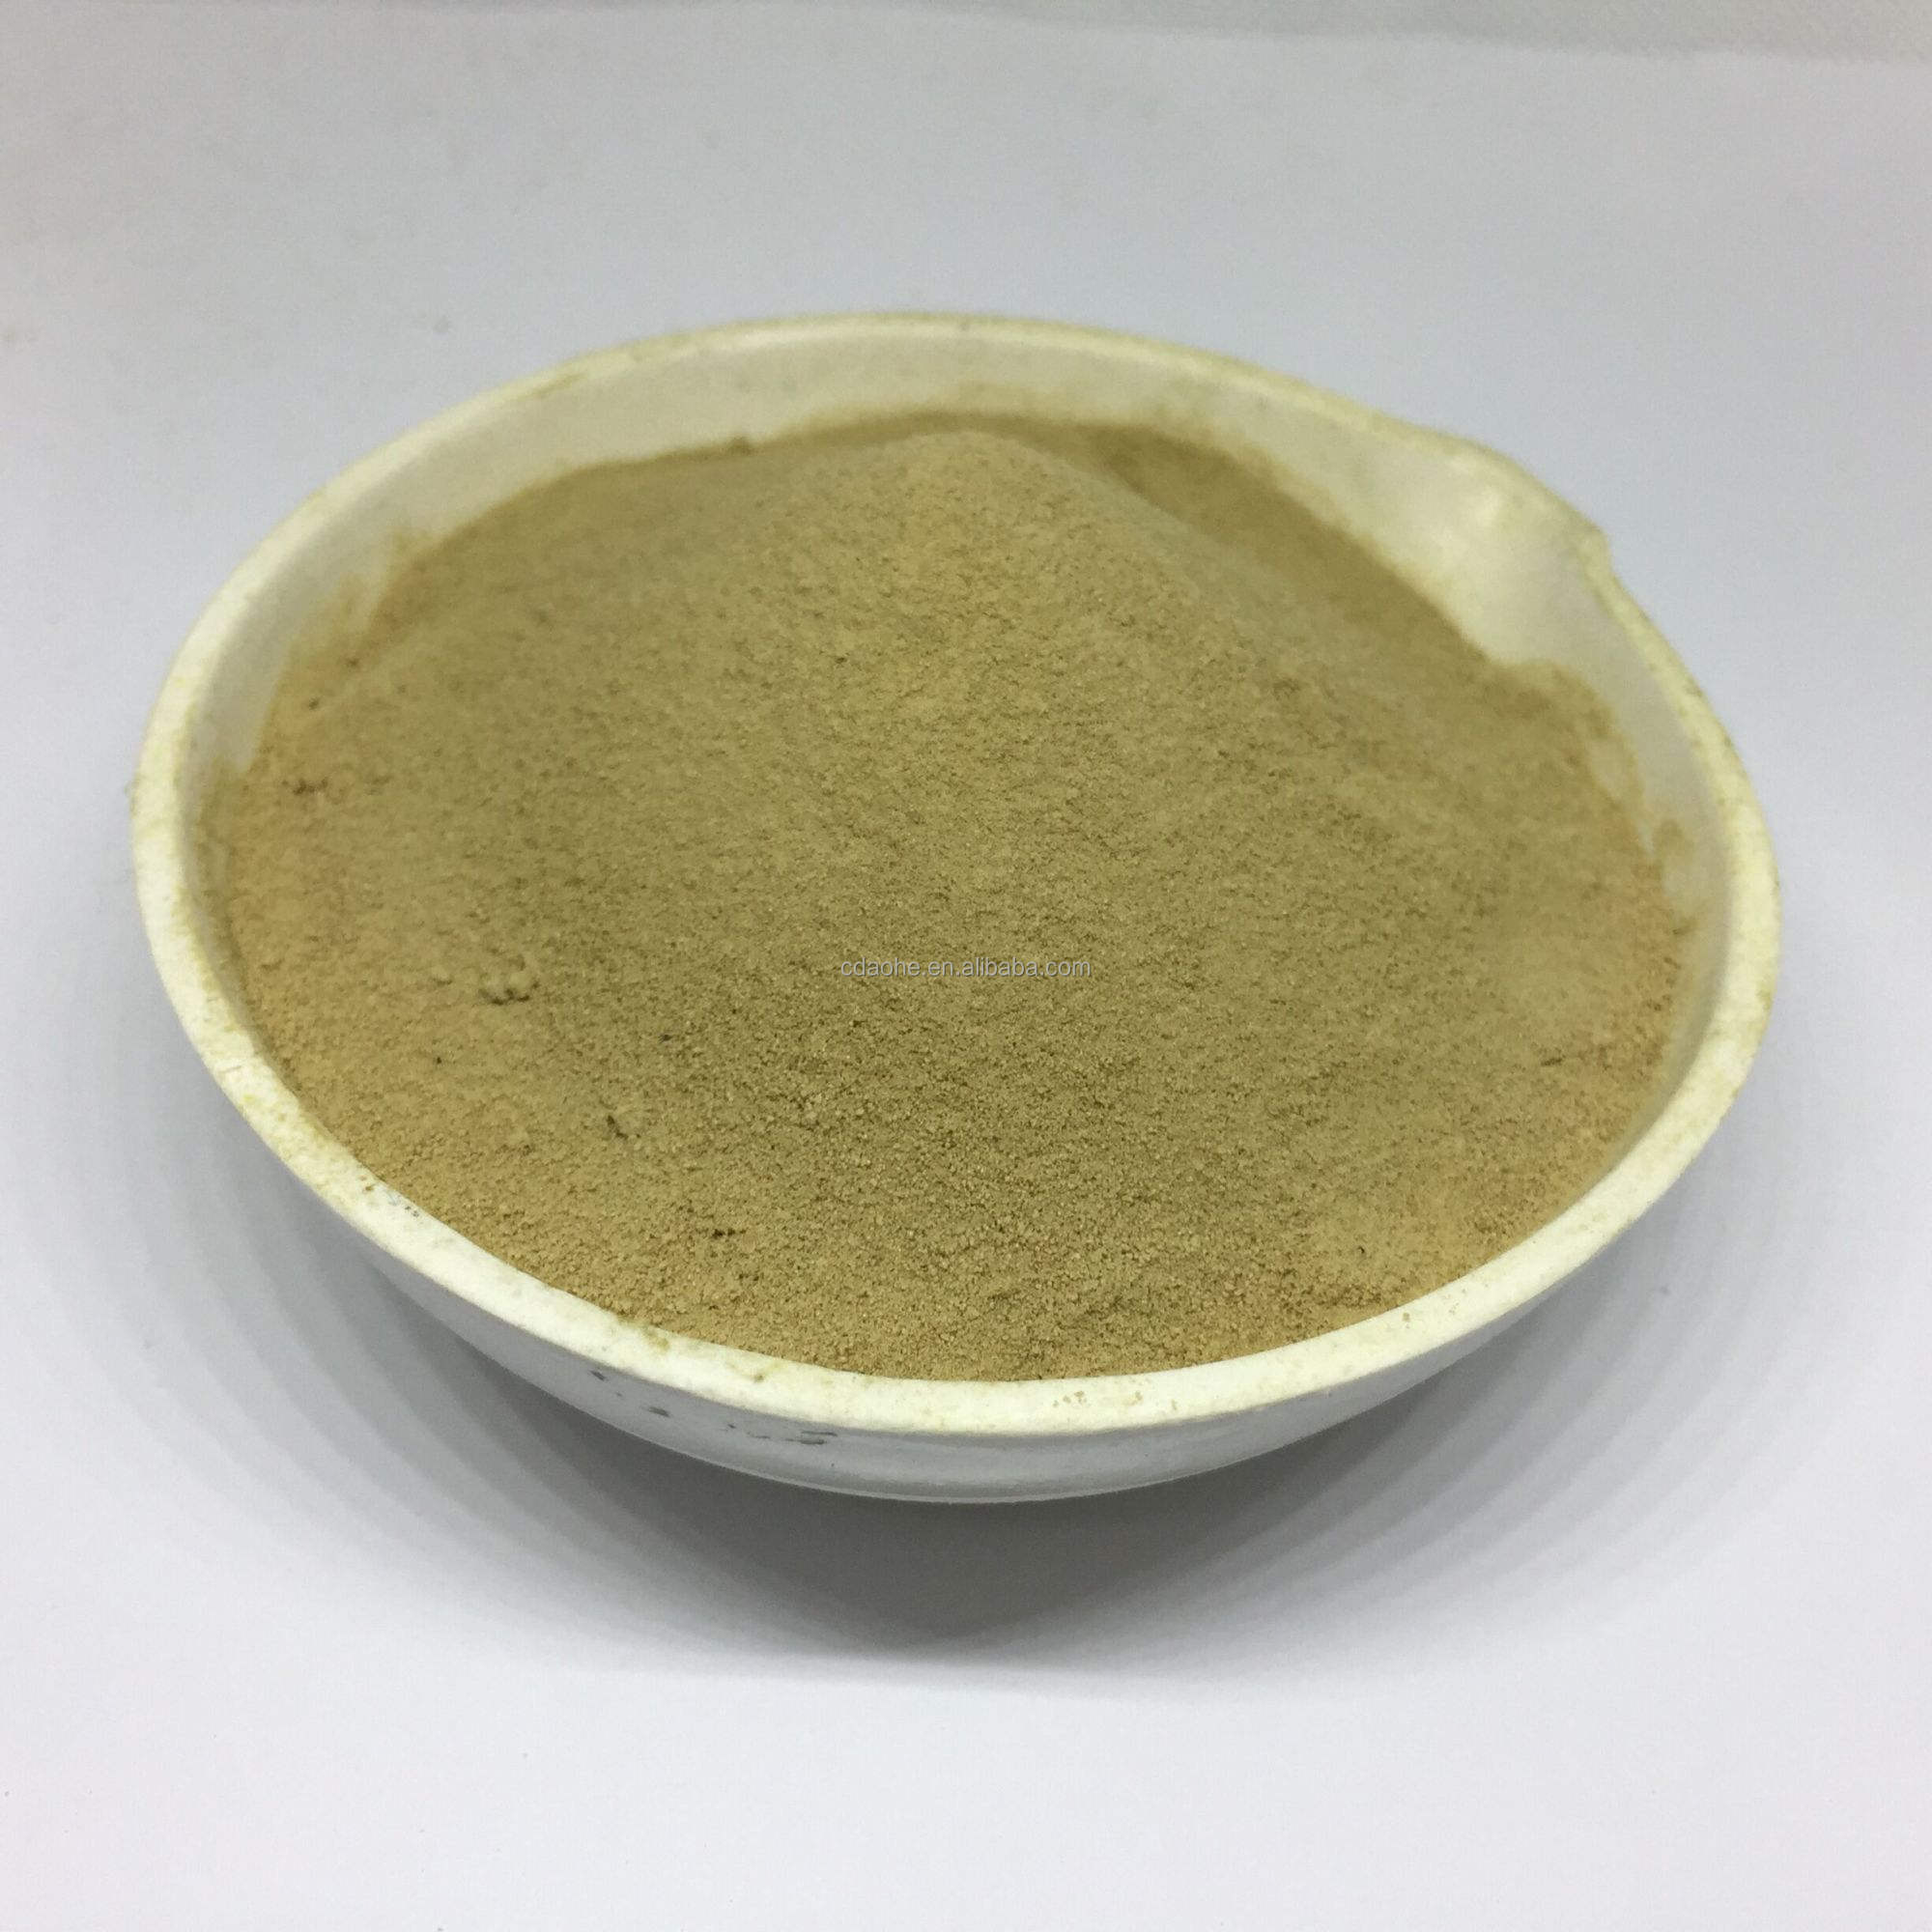 L-AMINO ACID NPK POTASSIUM CHELATE 8% WATER SOLUBLE POWDER